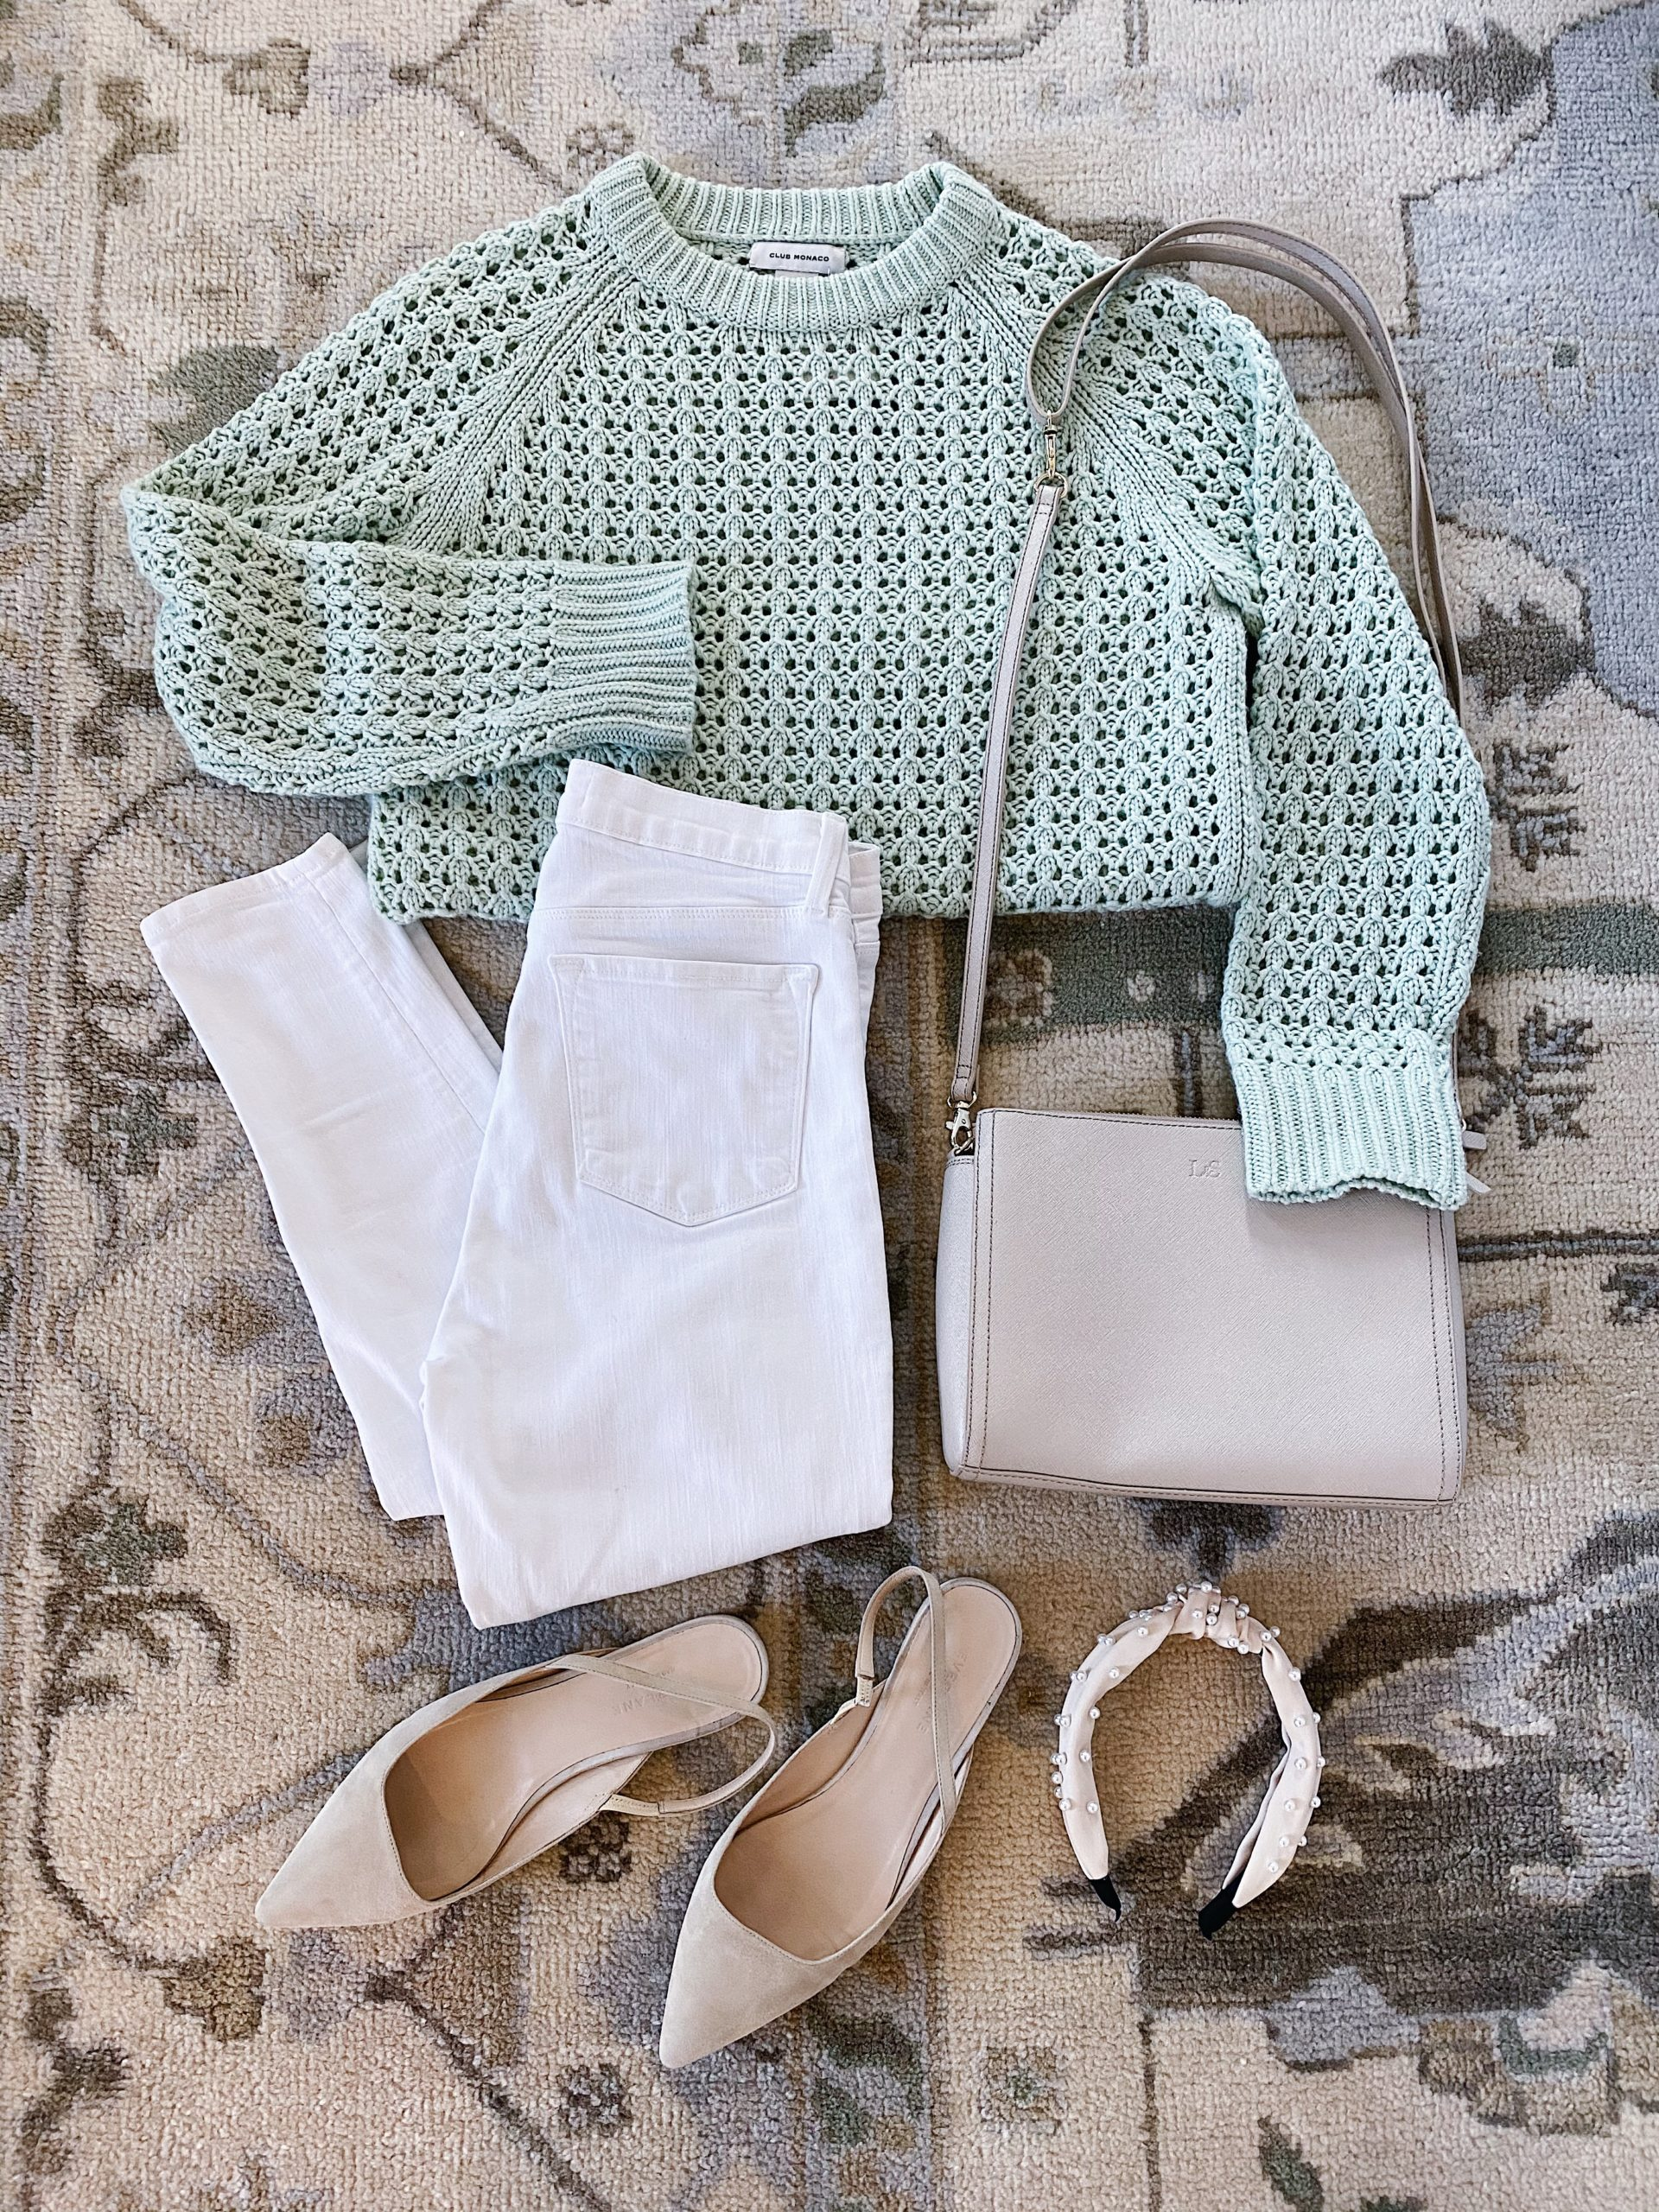 SPRING SUMMER OUTFIT IDEAS